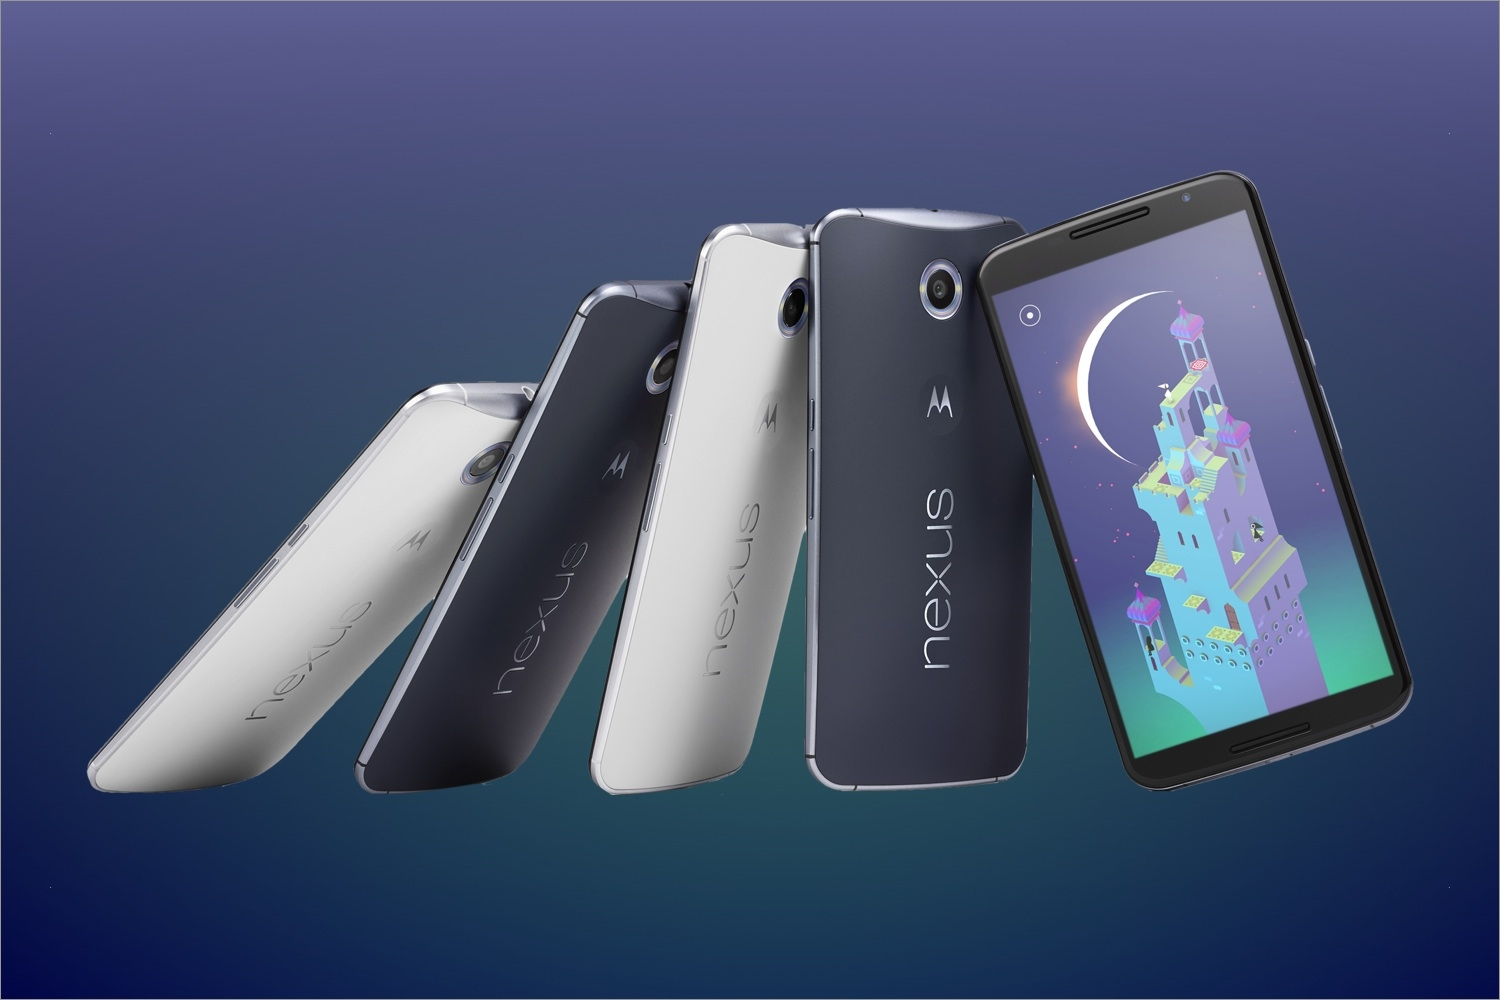 4 Reasons Why You Shouldn't Buy the Nexus 6